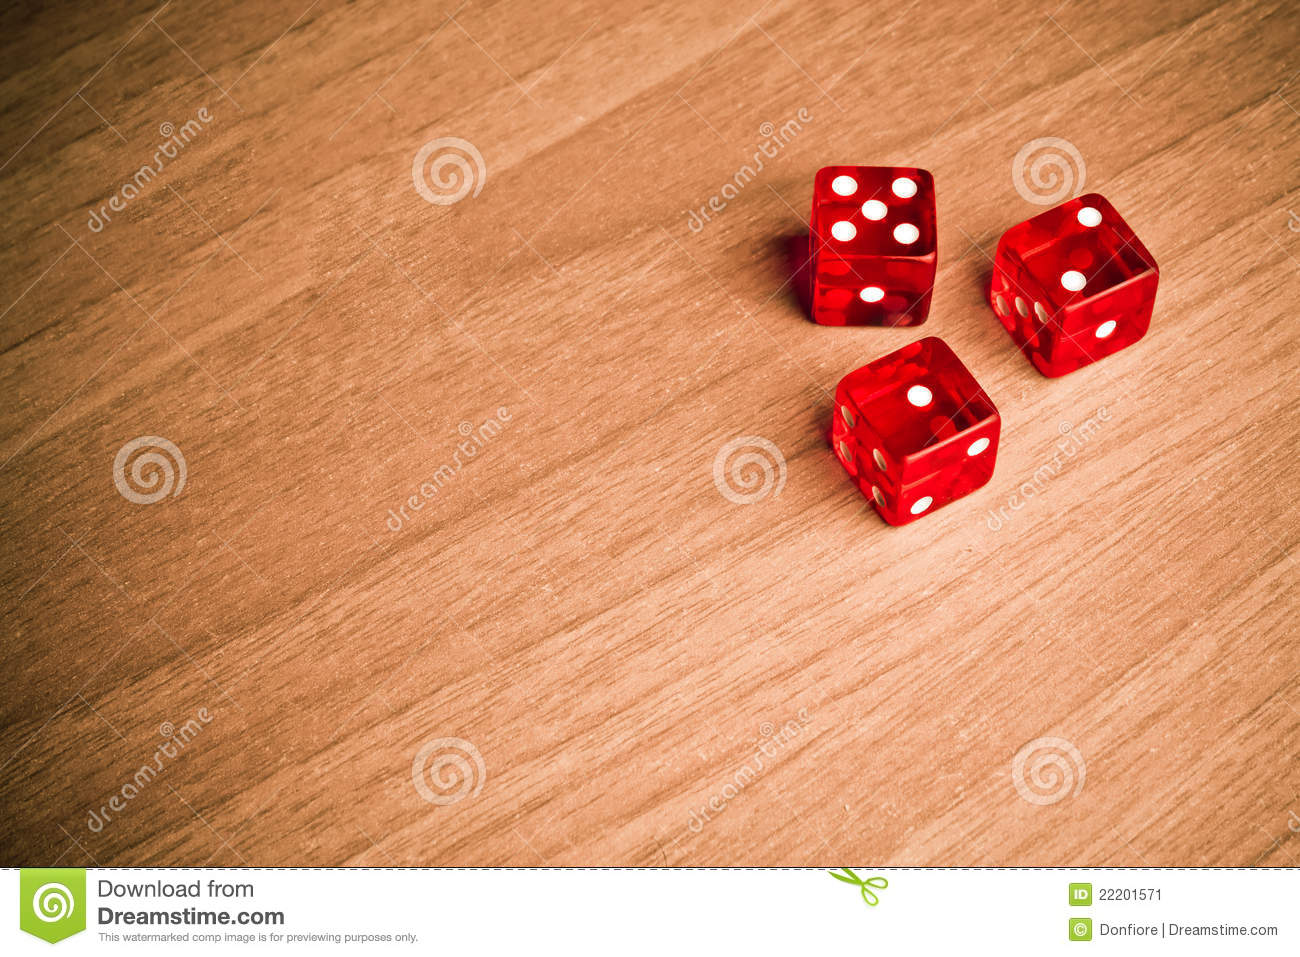 Odds of hitting numbers in craps